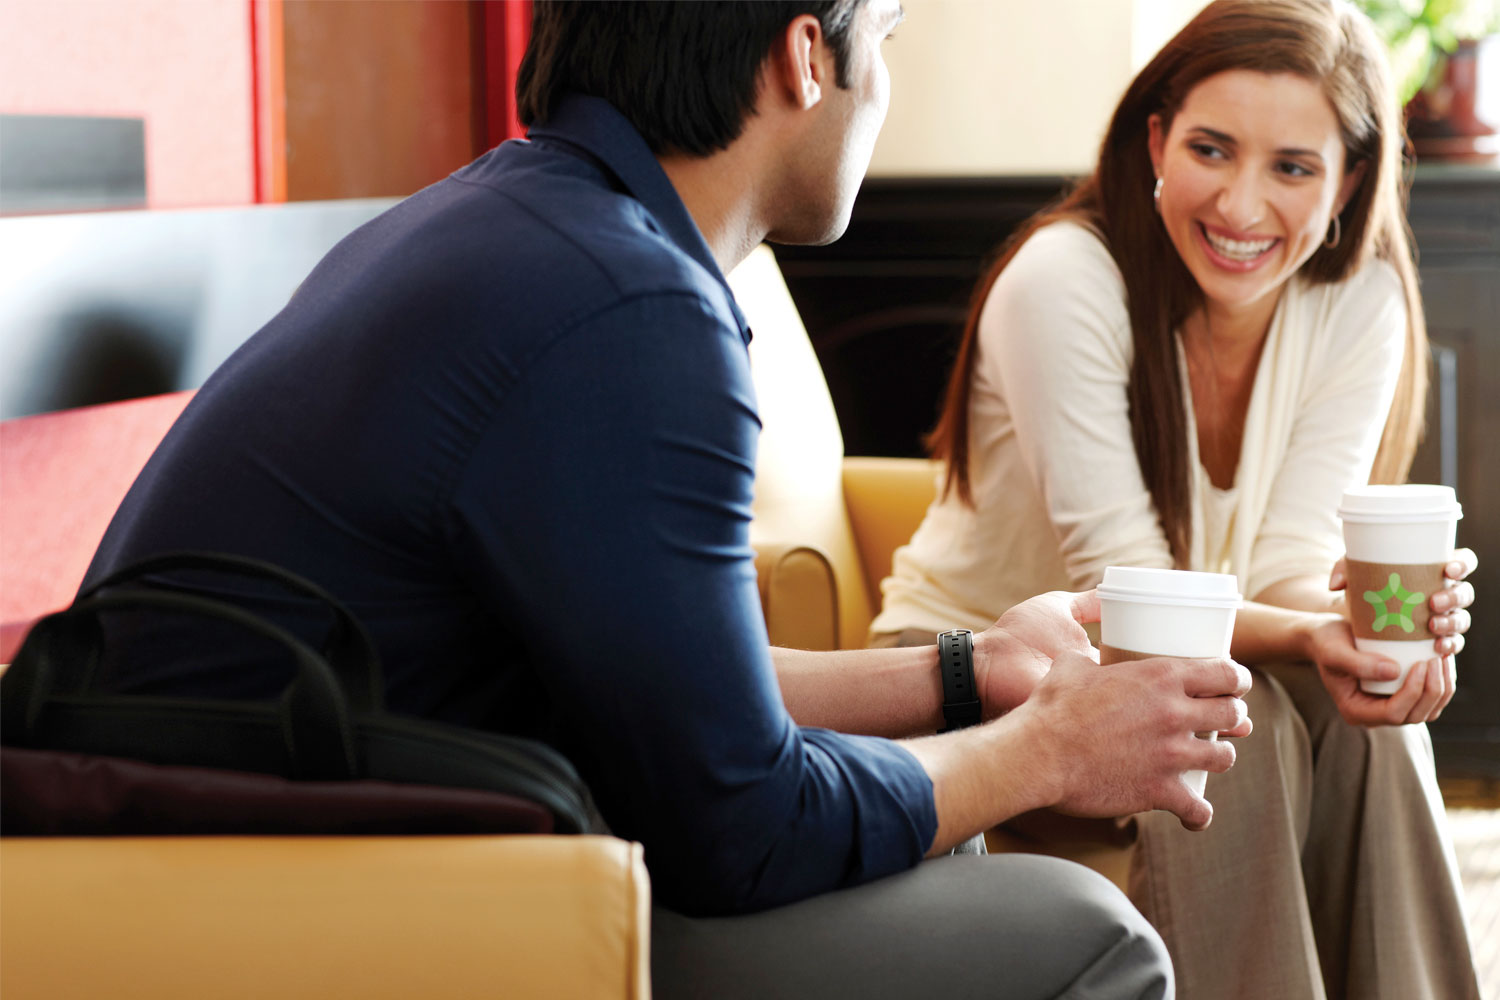 Guests enjoying the Extended Stay America lobby and complimentary coffee